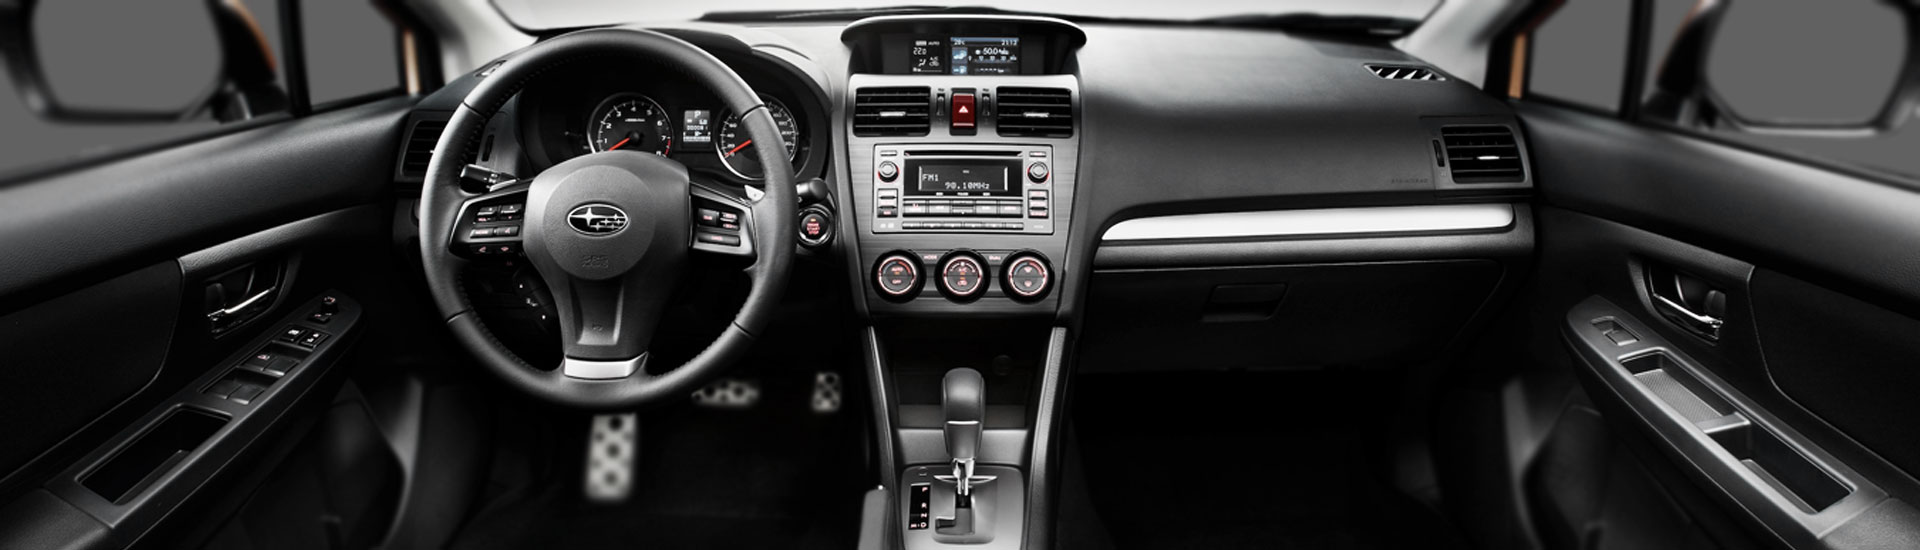 2013 Subaru Legacy Custom Dash Kits